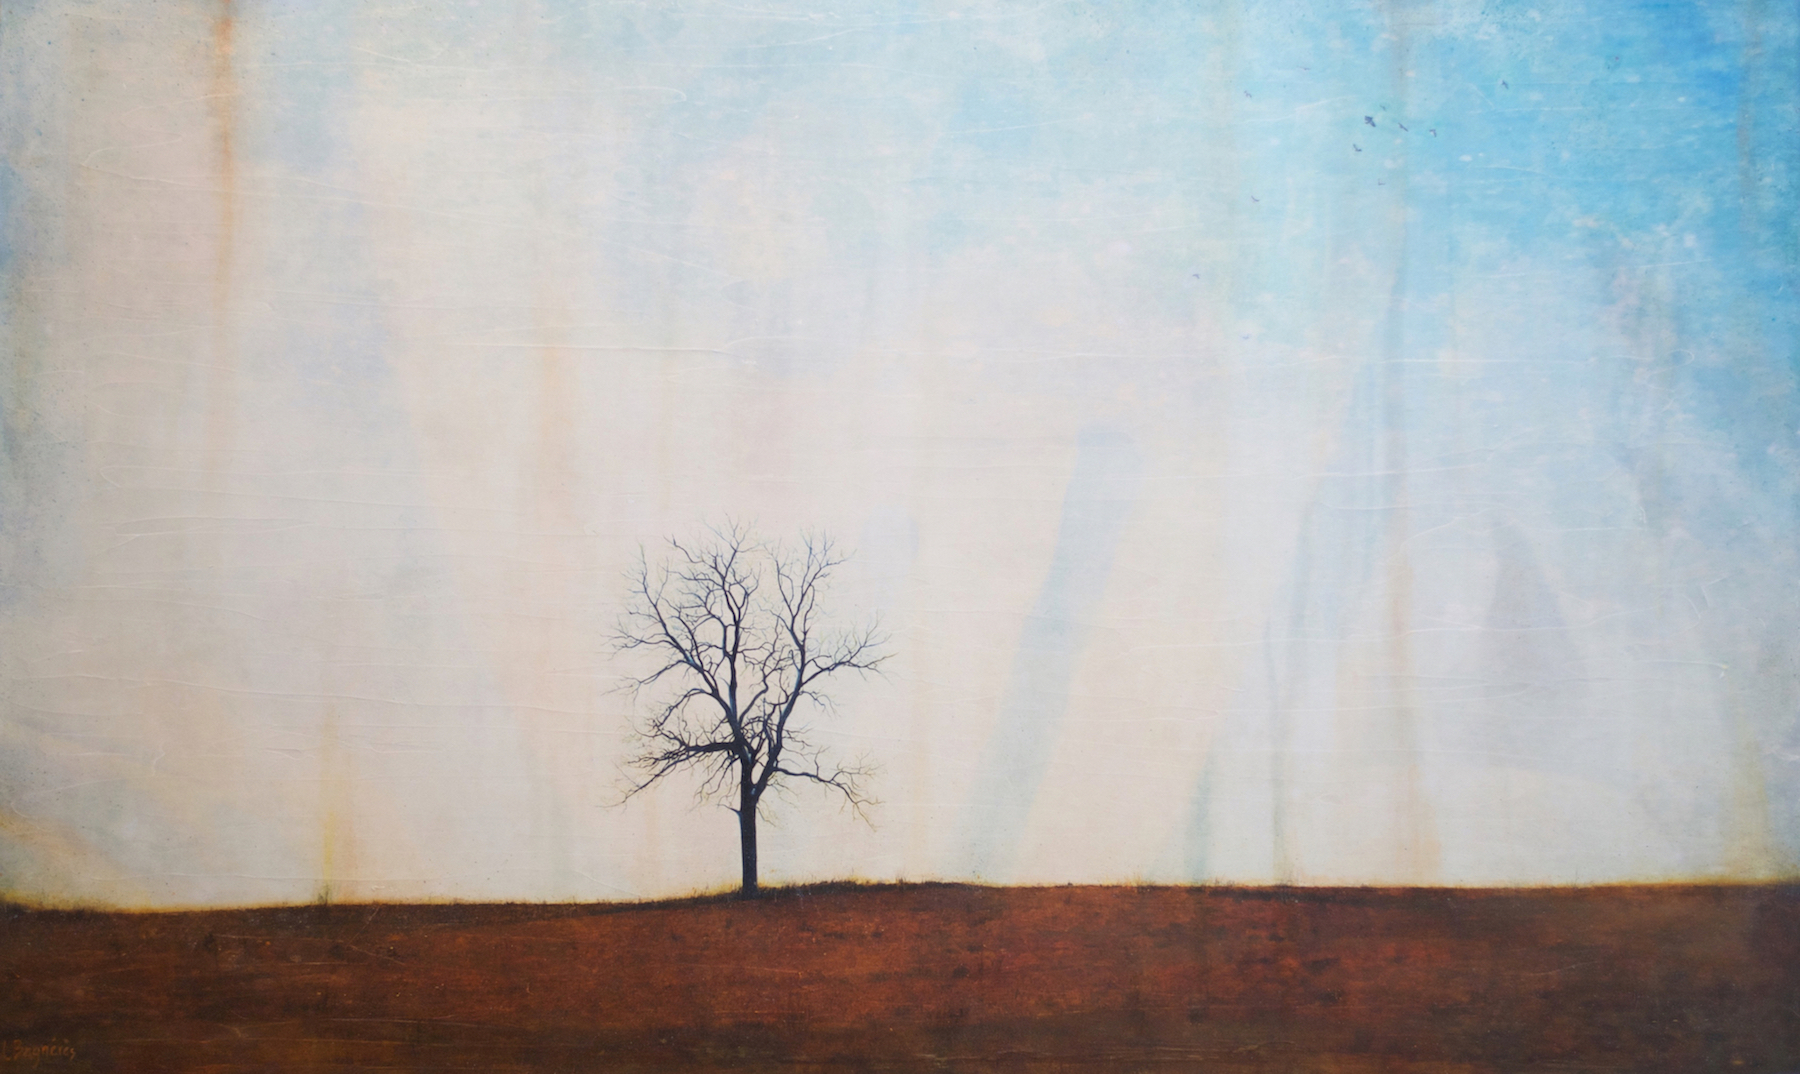 Freedom Found, mixed media tree painting by Lori Bagneres | Effusion Art Gallery + Cast Glass Studio, Invermere BC